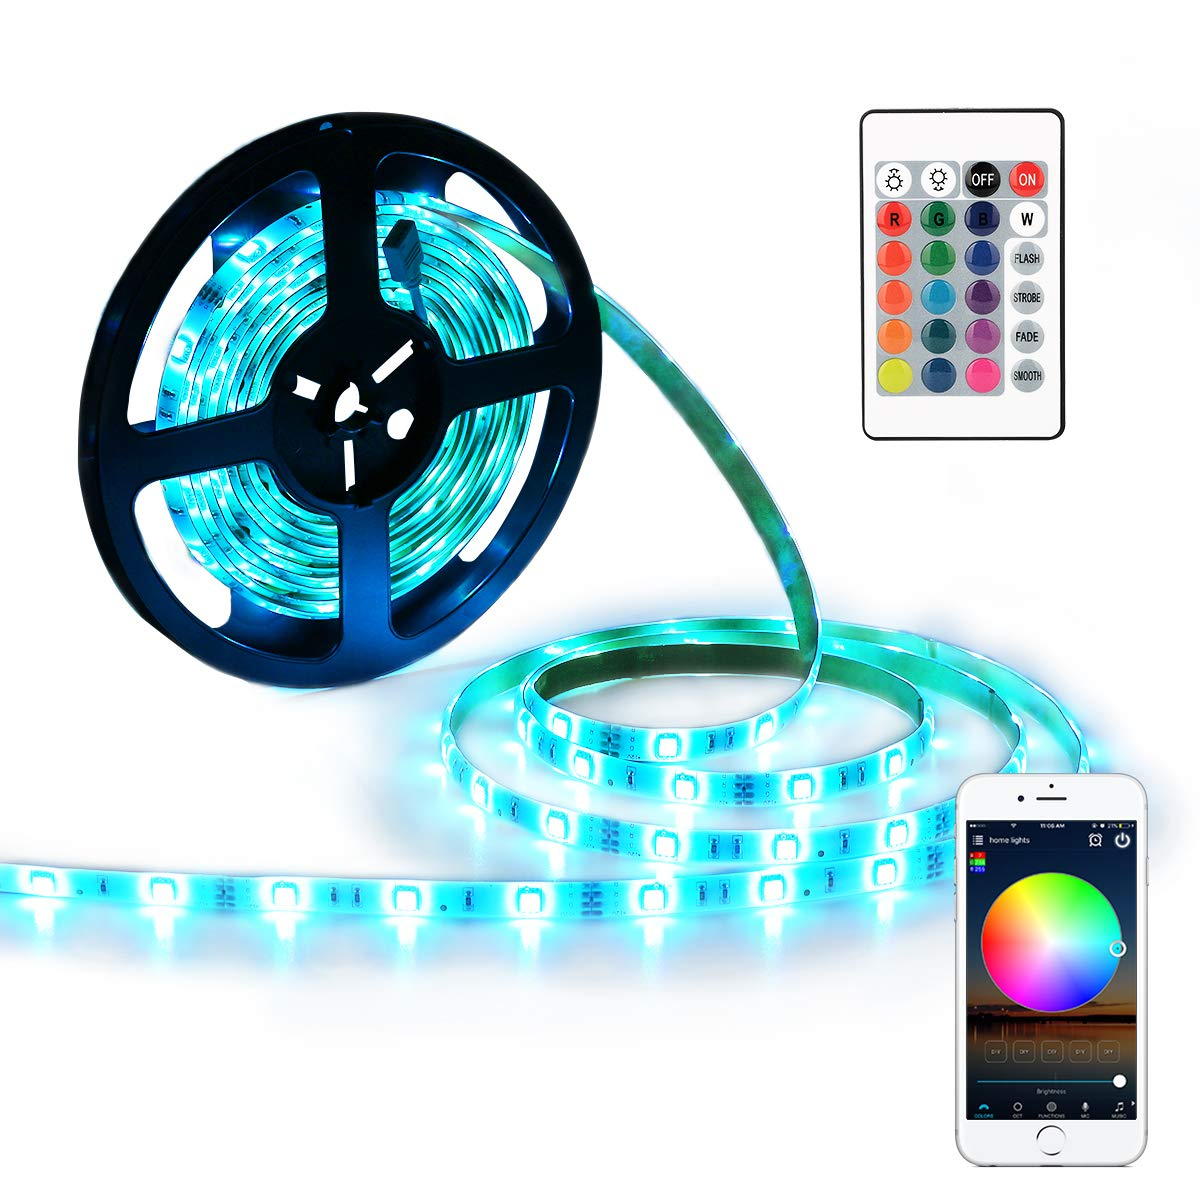 LED Strips Lights YIHONG RGB Strip Lights 5M LED Tape Lights Compatible with Alexa and Google Home 150 5050 SMD Smart WiFi Strip Lights,IR Remote +12V Power Adapter Included | IP65 Waterproof